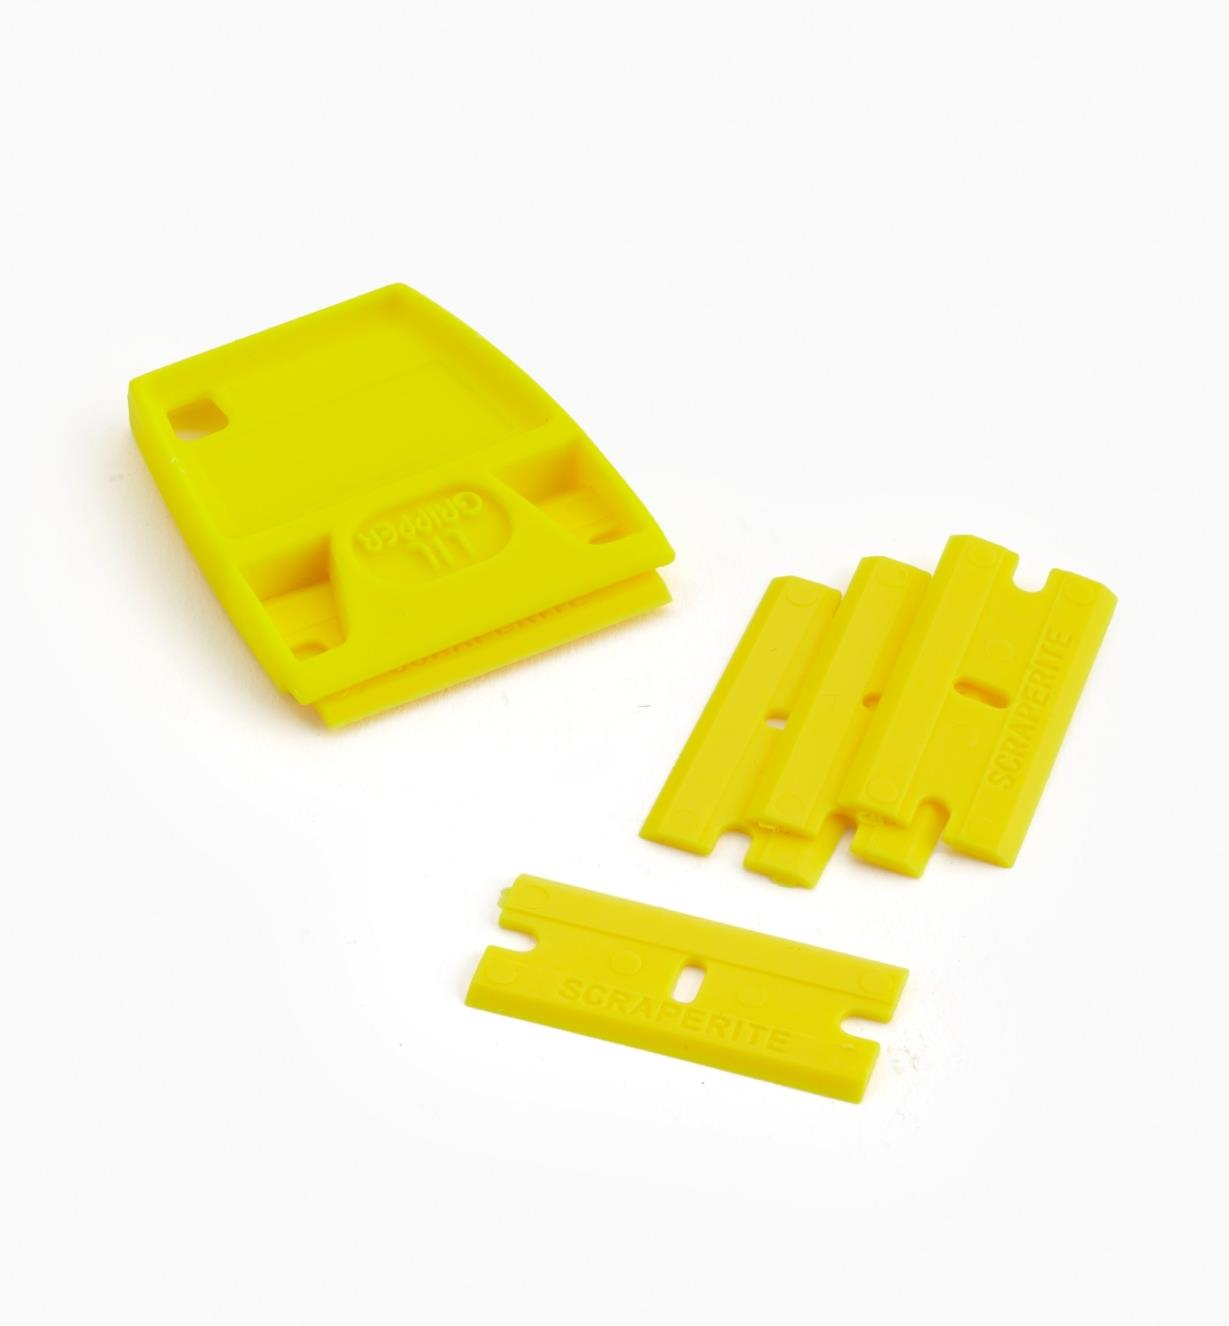 86K0318 - Yellow Blades (5) & Holder